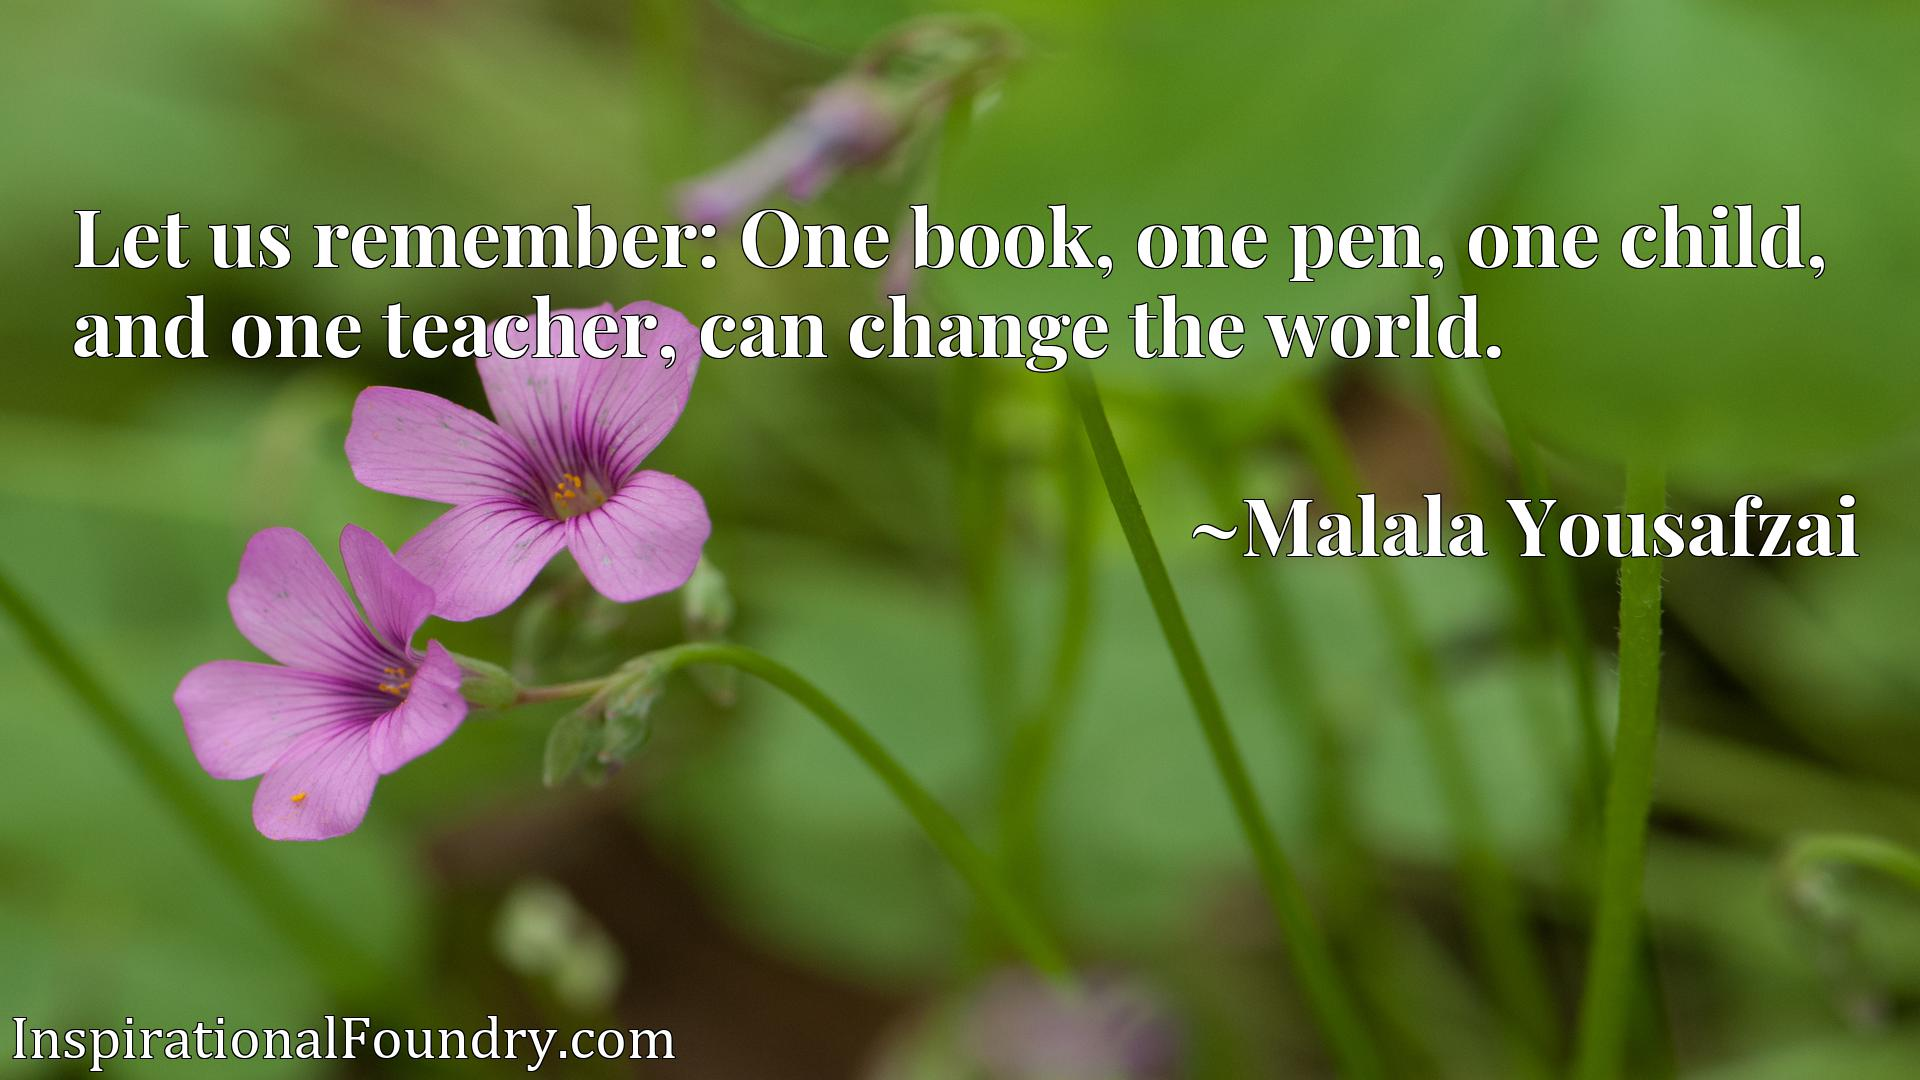 Let us remember: One book, one pen, one child, and one teacher, can change the world.